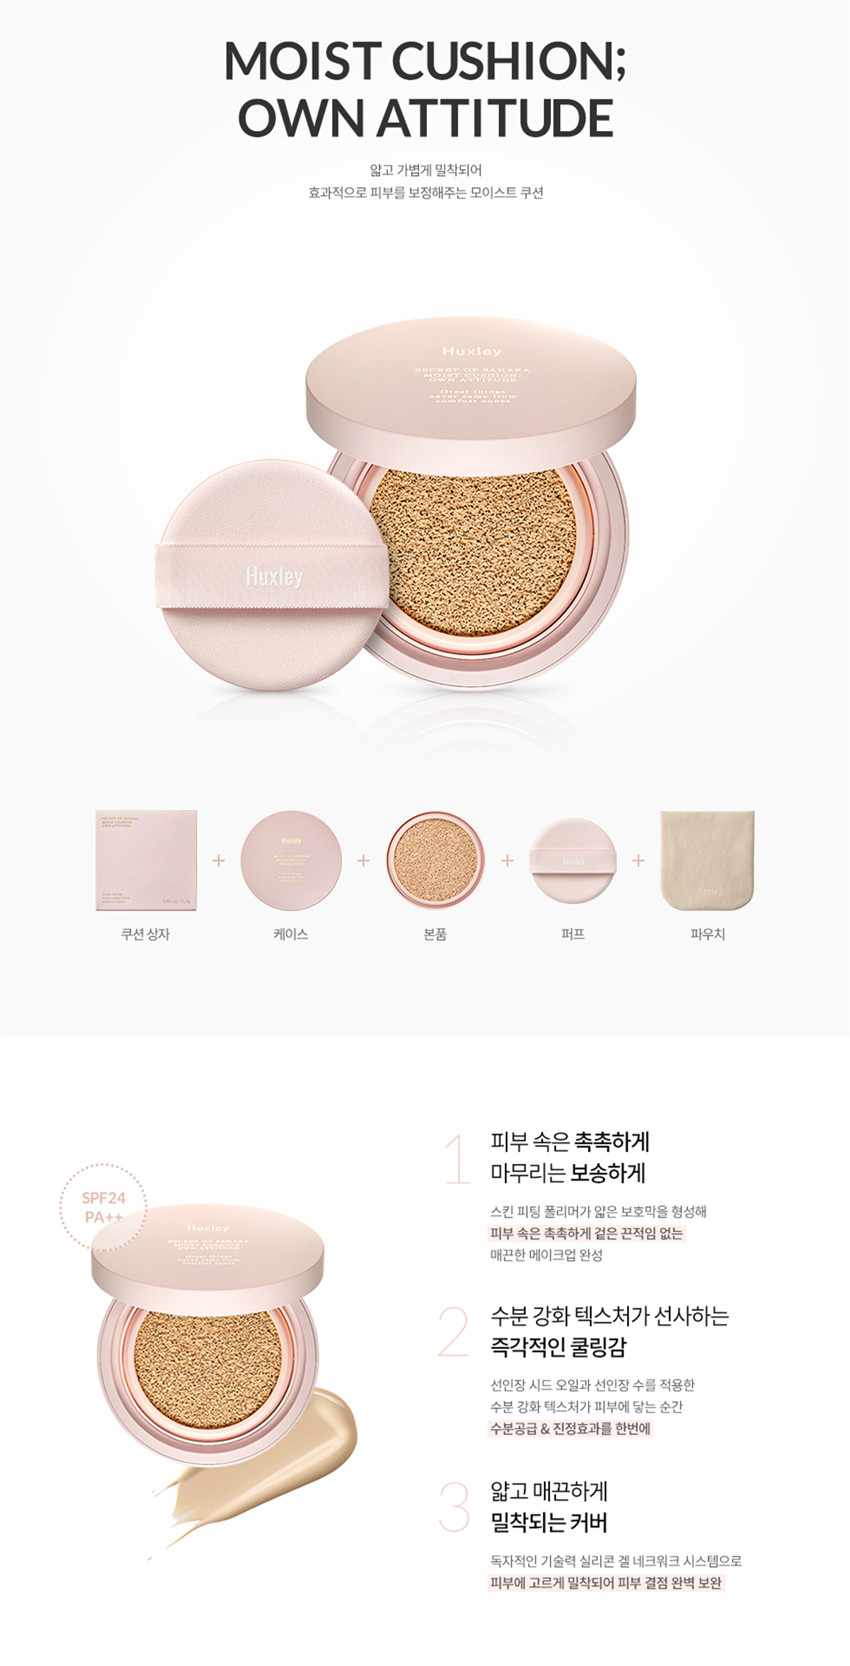 Huxley Moist Cushion : Own Attitude SPF24 PA++ 仙人掌煥白保濕氣墊粉底